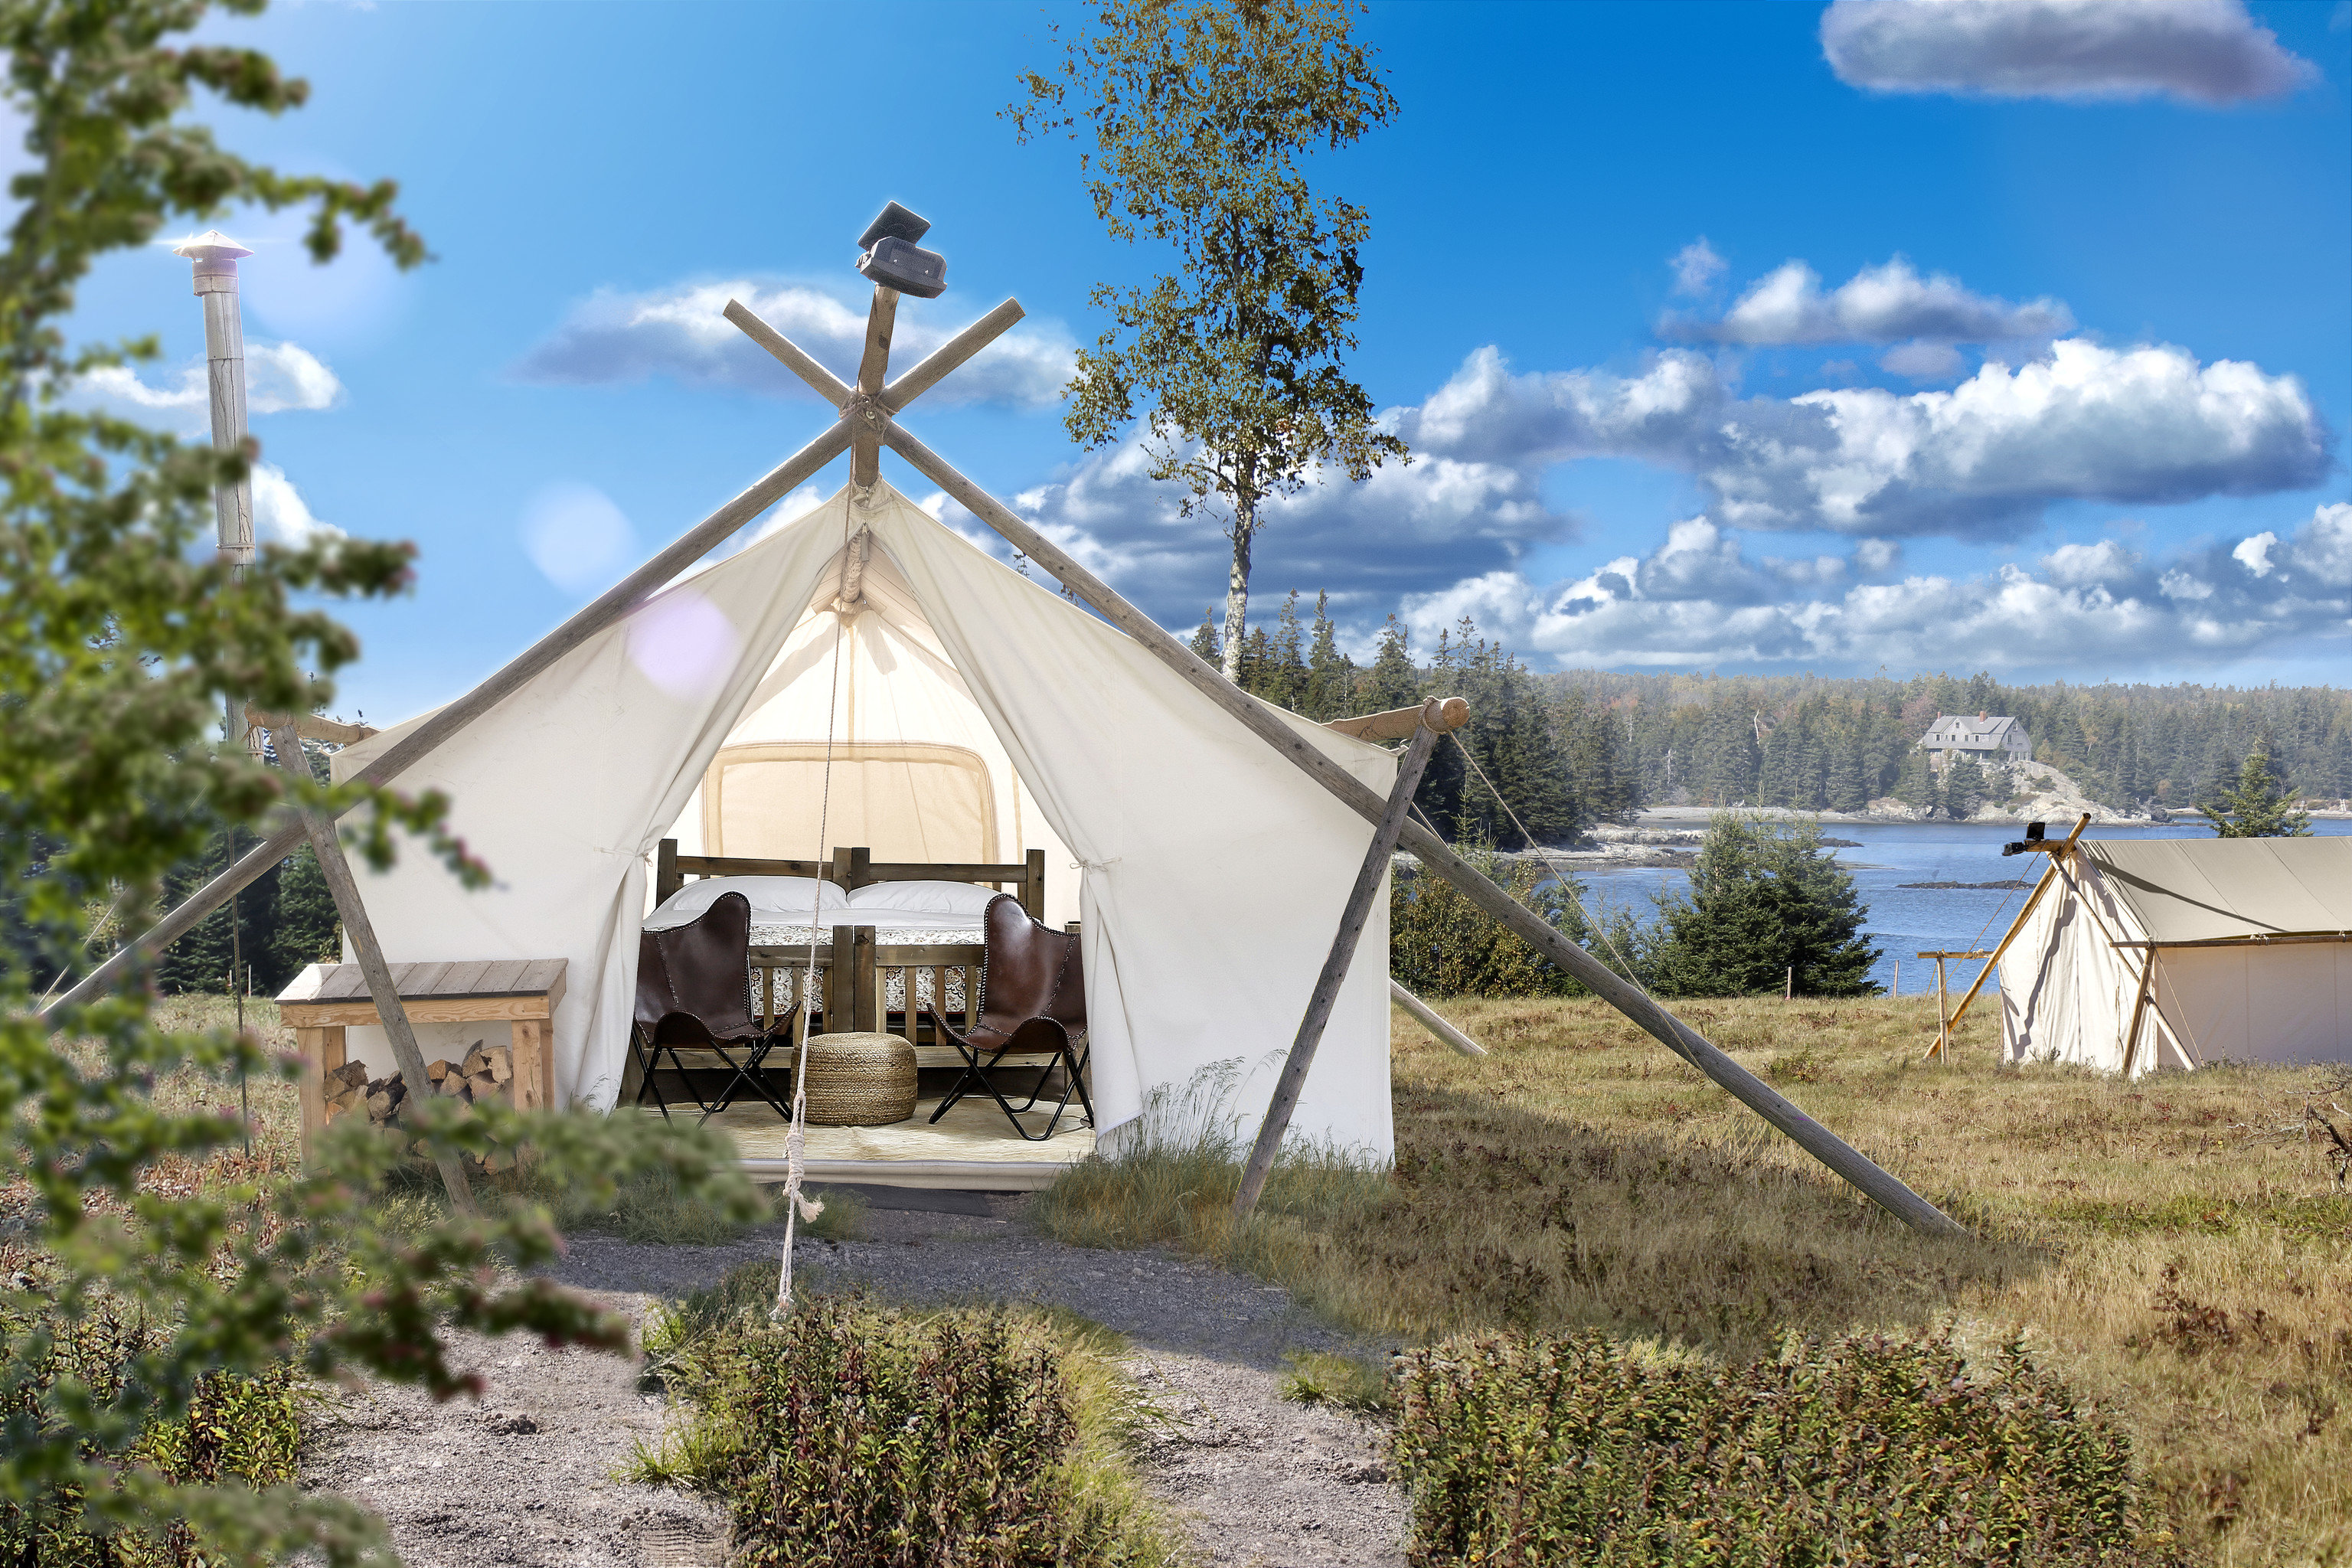 Glamping Luxury Travel Outdoors + Adventure Trip Ideas Weekend Getaways sky outdoor tree grass building cottage home tepee hut house rural area real estate cloud yurt landscape mountain